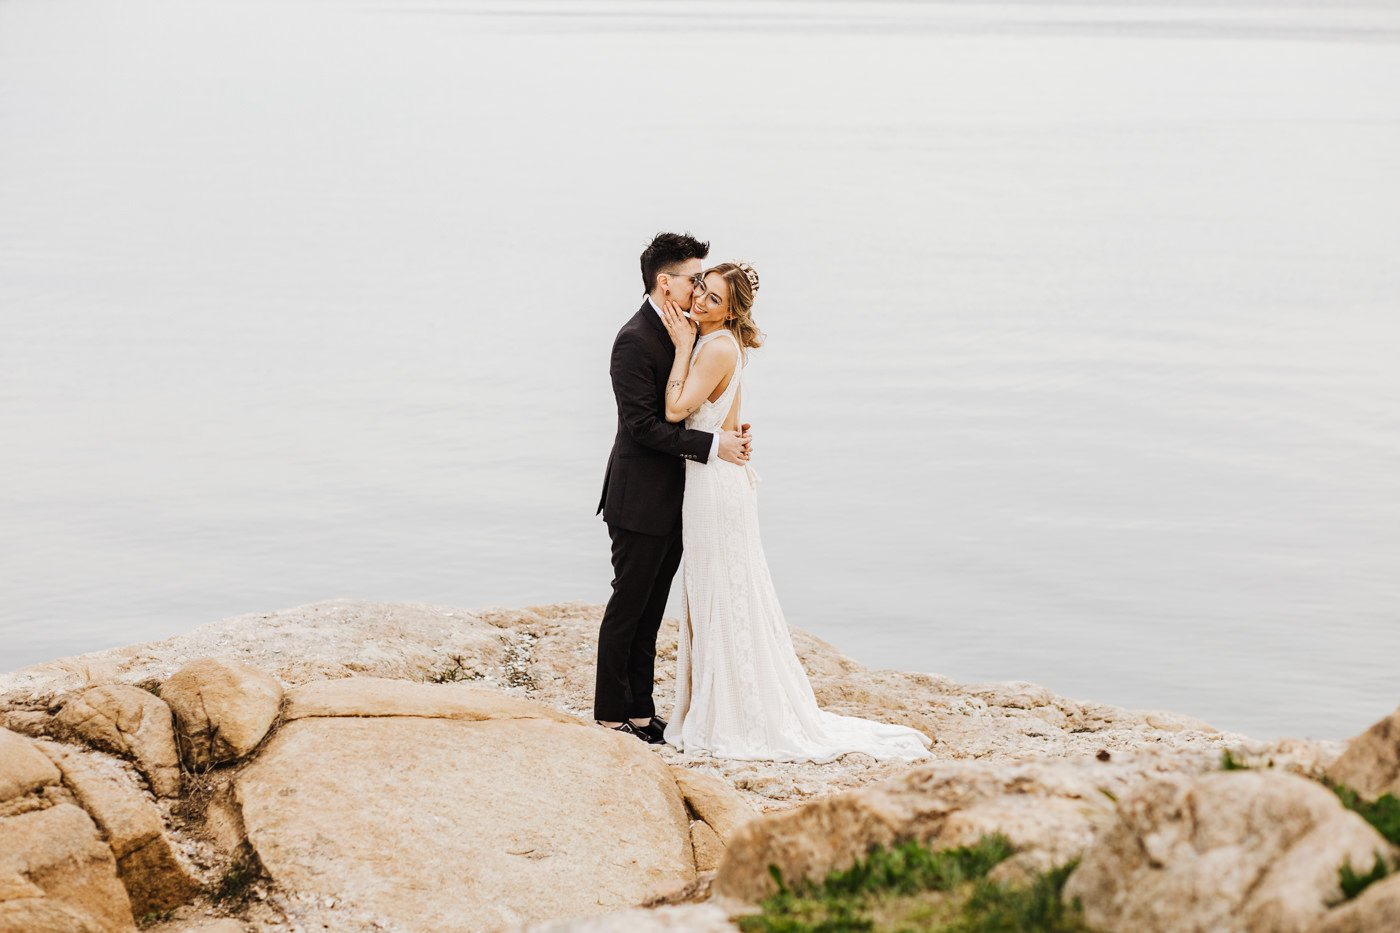 New England elopement, couple embracing during Connecticut elopement photos near the shoreline